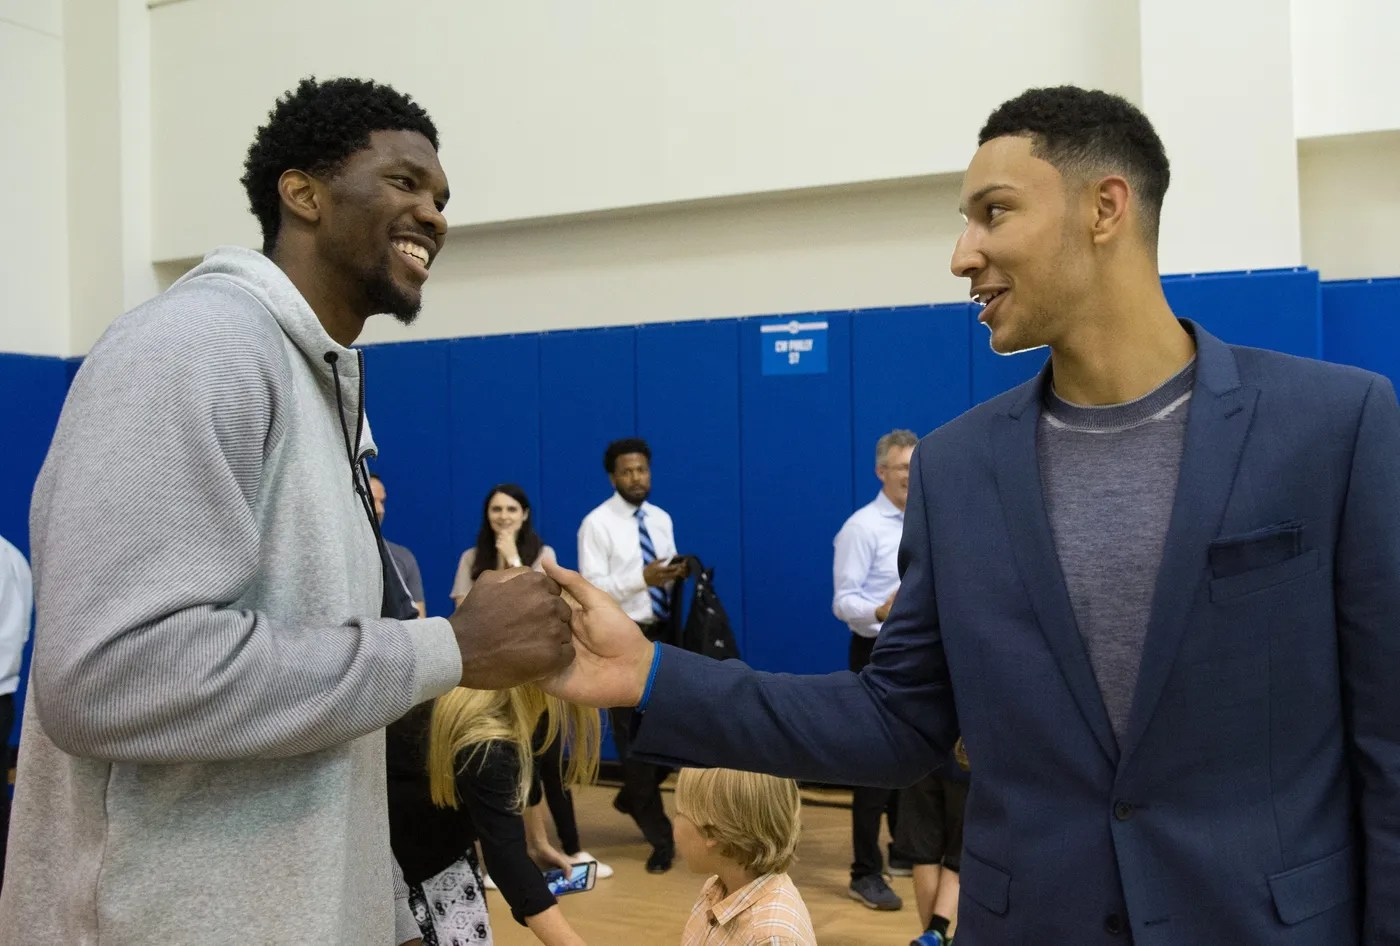 Jun 24, 2016; Philadelphia, PA, USA; Philadelphia 76ers number one overall draft pick Ben Simmons (R) is greeted by center Joel Embiid (L) during a press conference at the Philadelphia College Of Osteopathic Medicine.